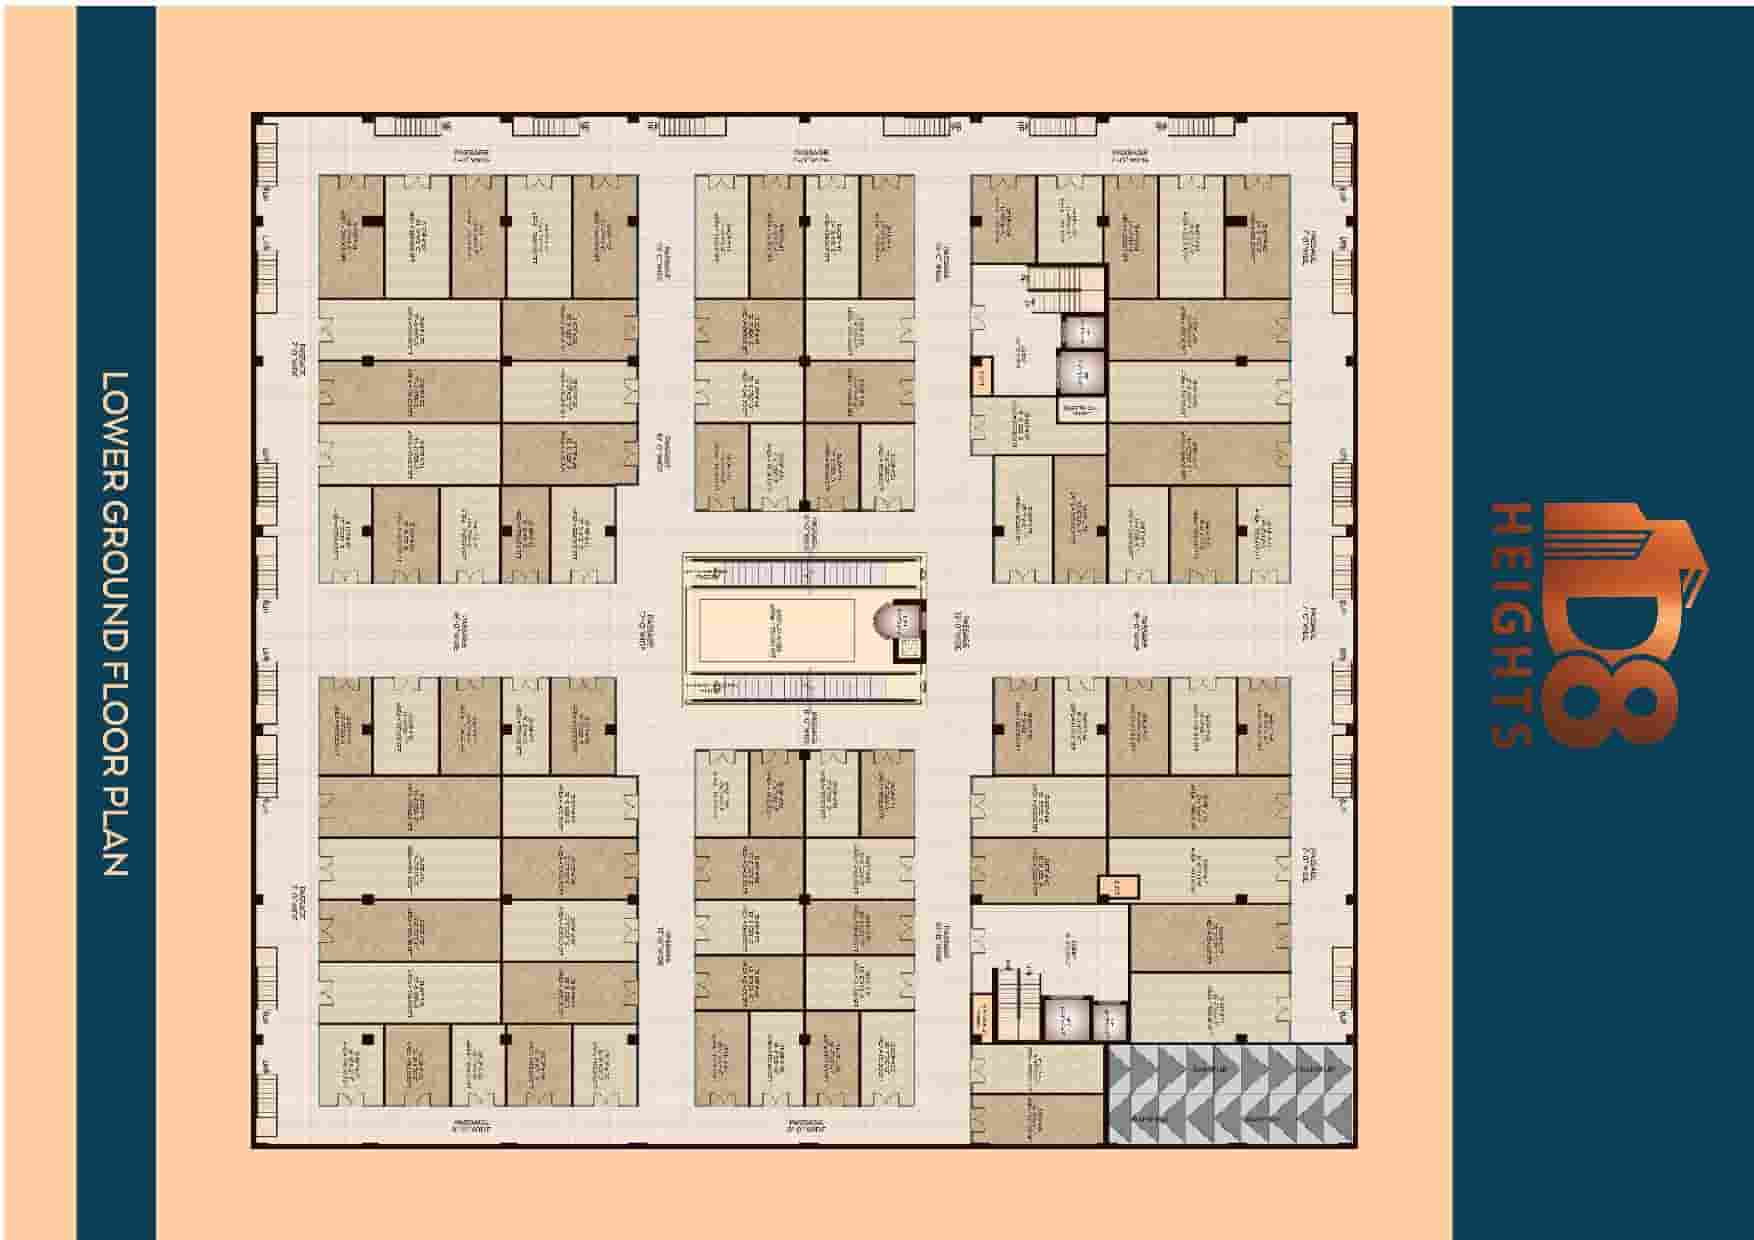 D8 Heights Lower Ground Floor Plan